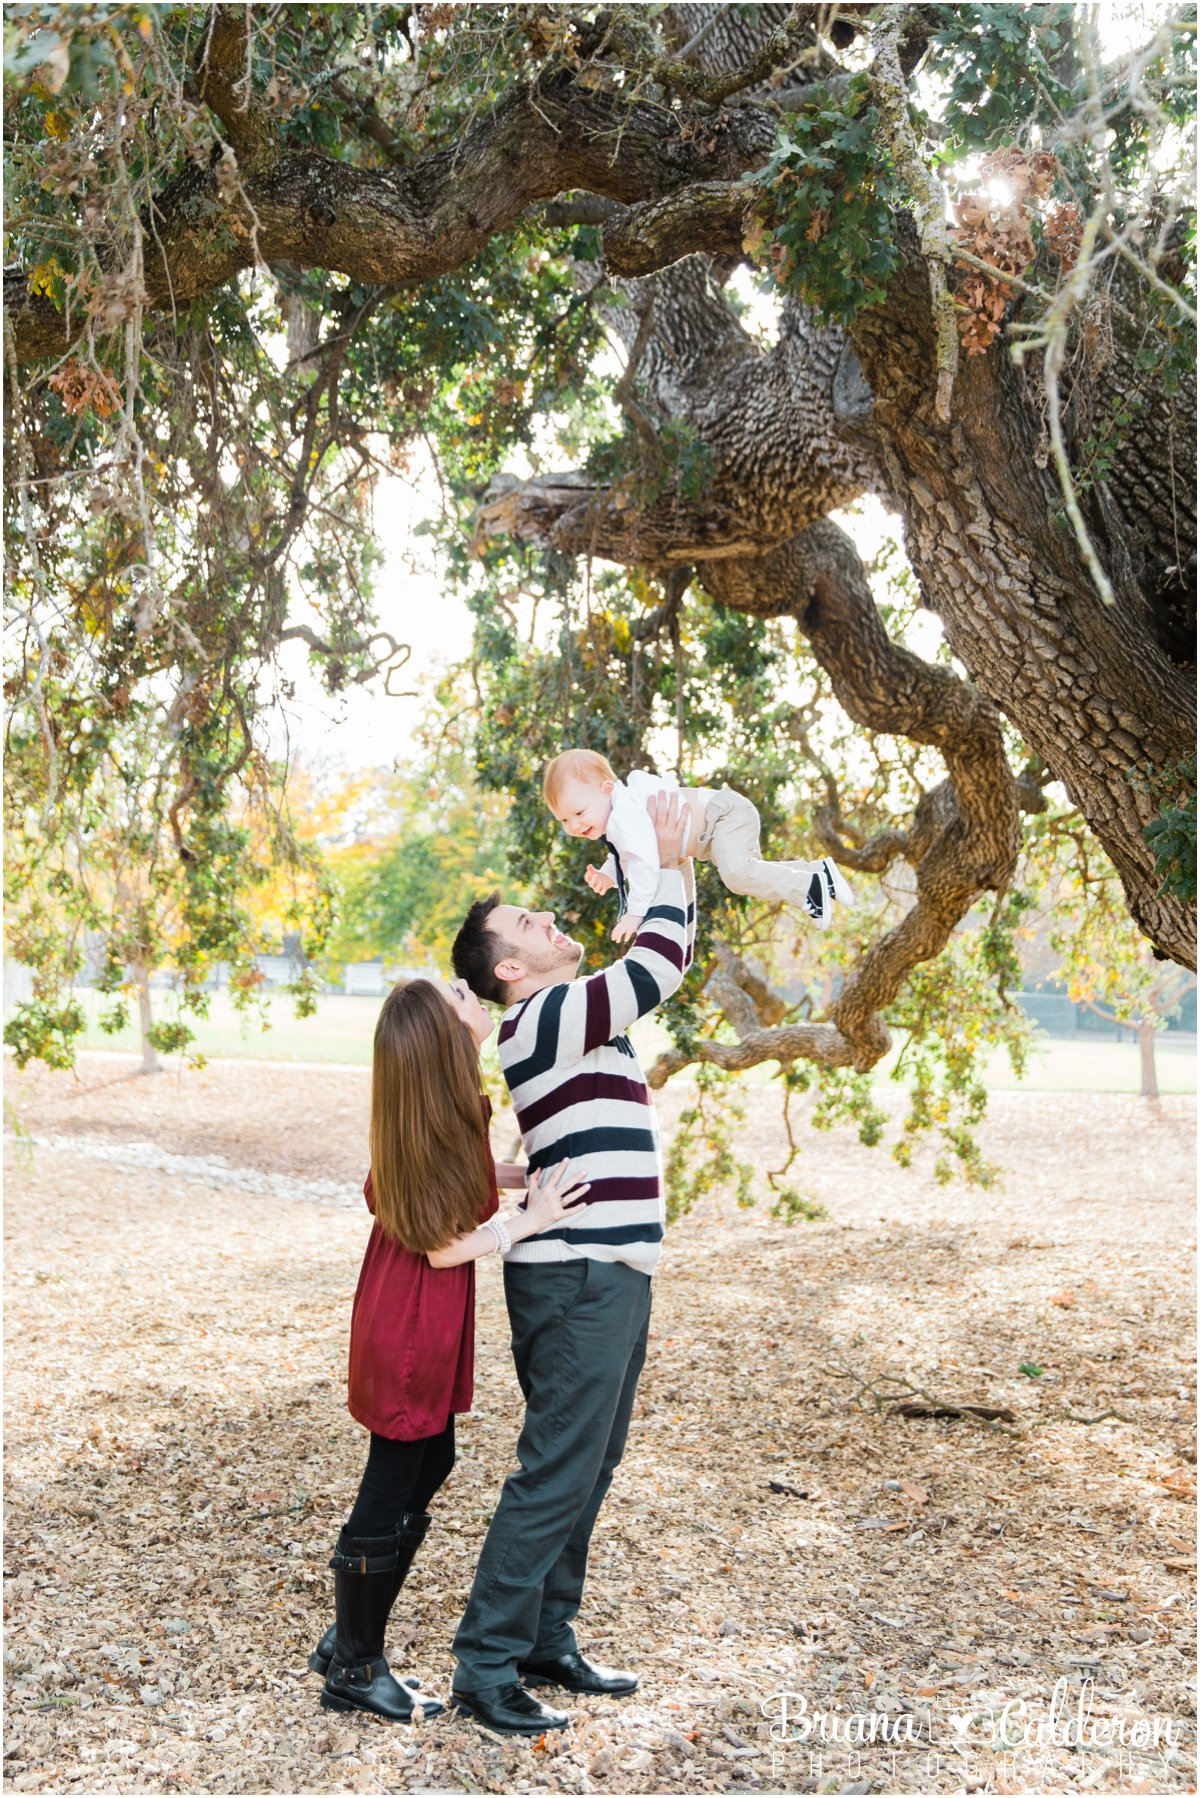 Family mini shoot at Holbrook Palmer Park in Atherton, CA. Photos by Briana Calderon Photography based in the San Francisco Bay Area in California.